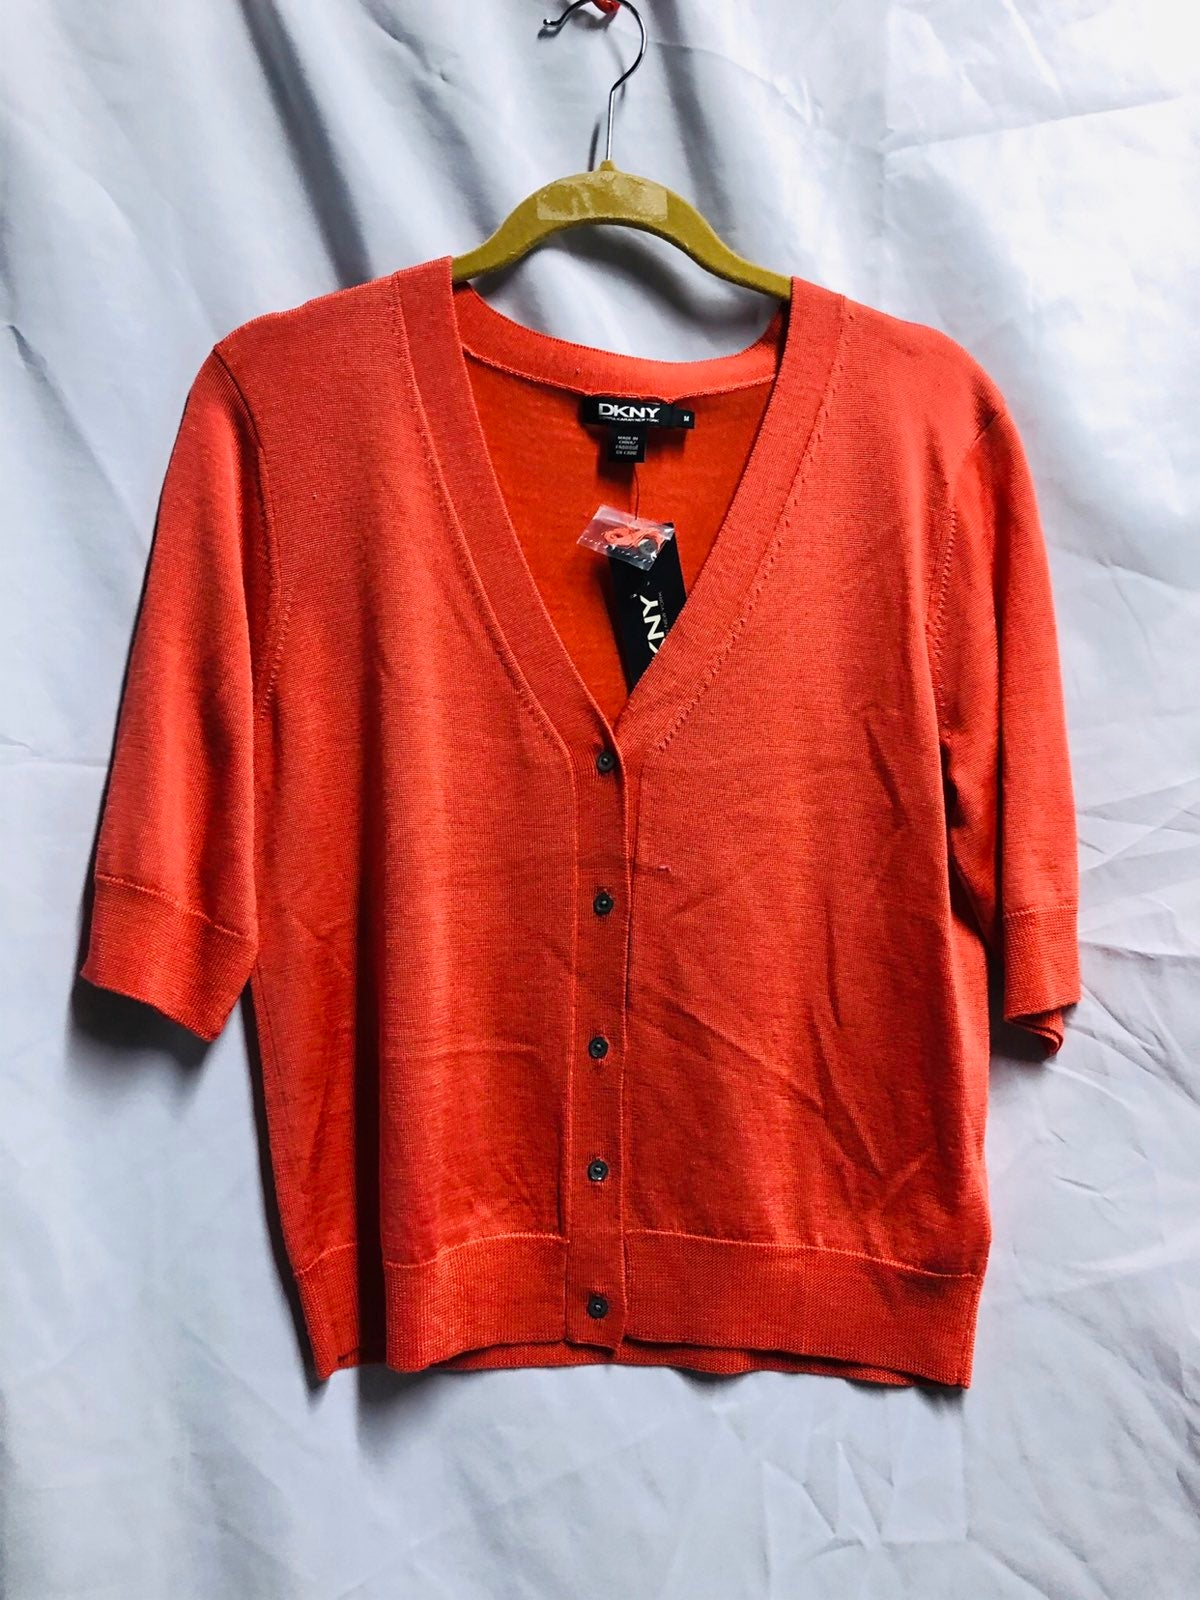 NWT DKNY orange knit top M